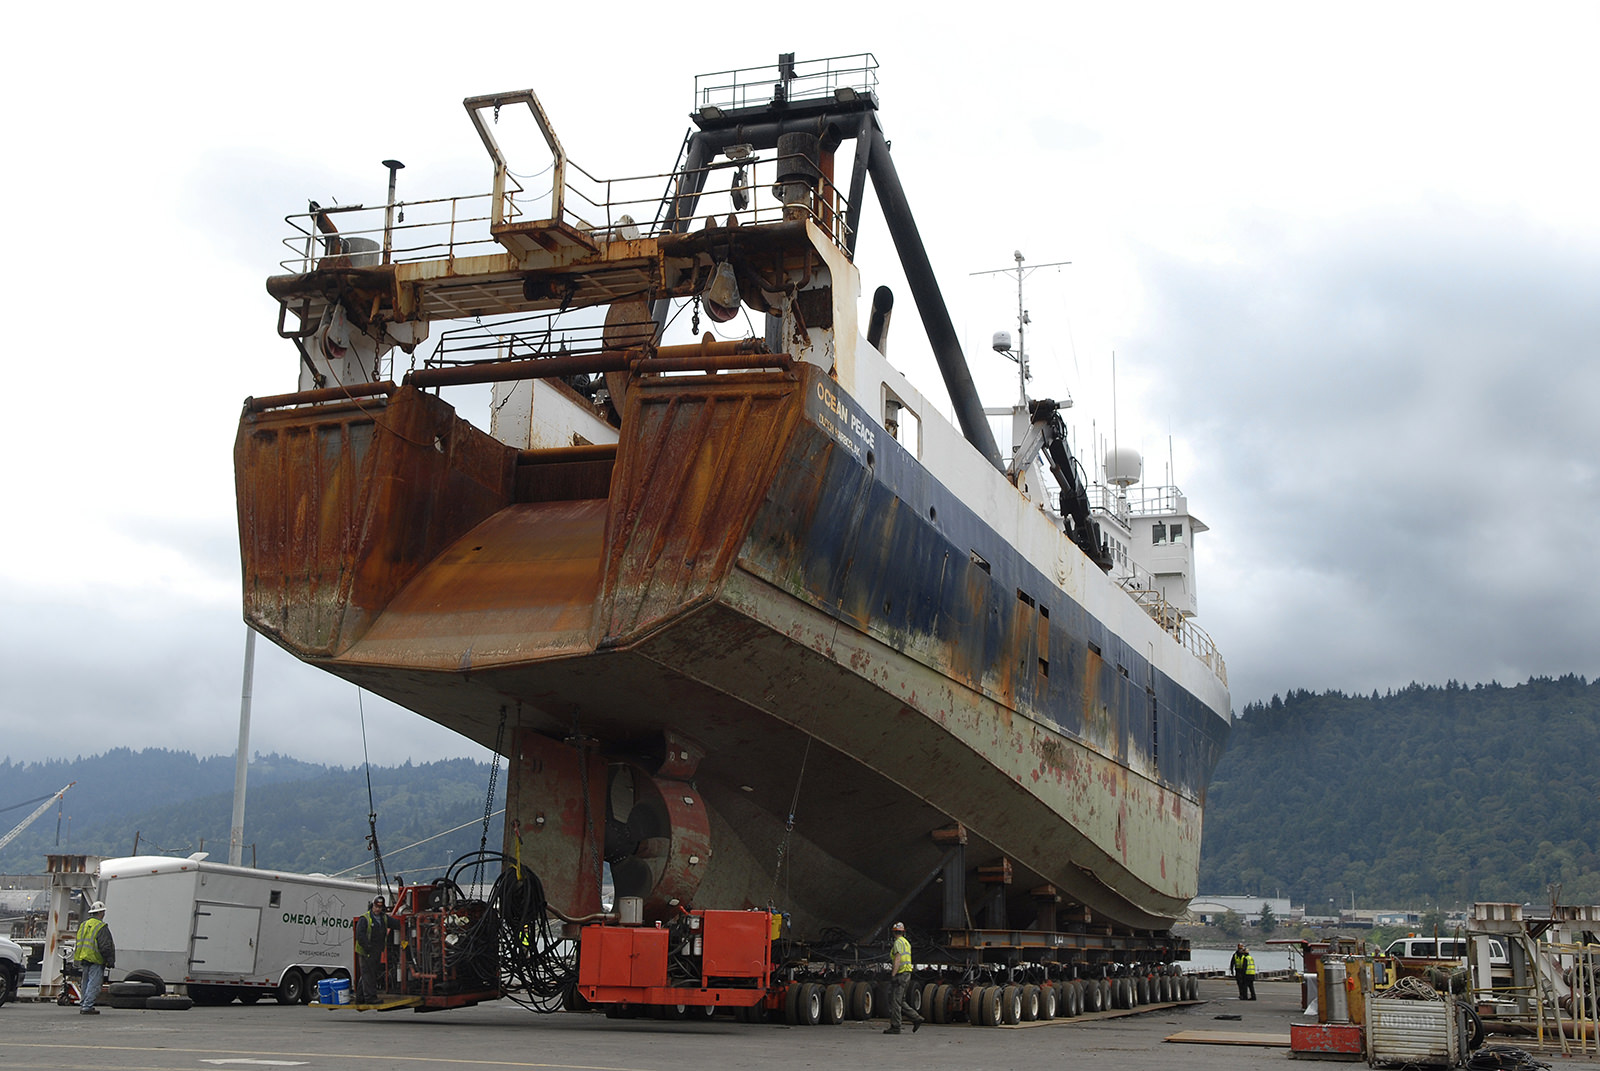 Moving 1,800 ton fishing vessel with self propelled dollies